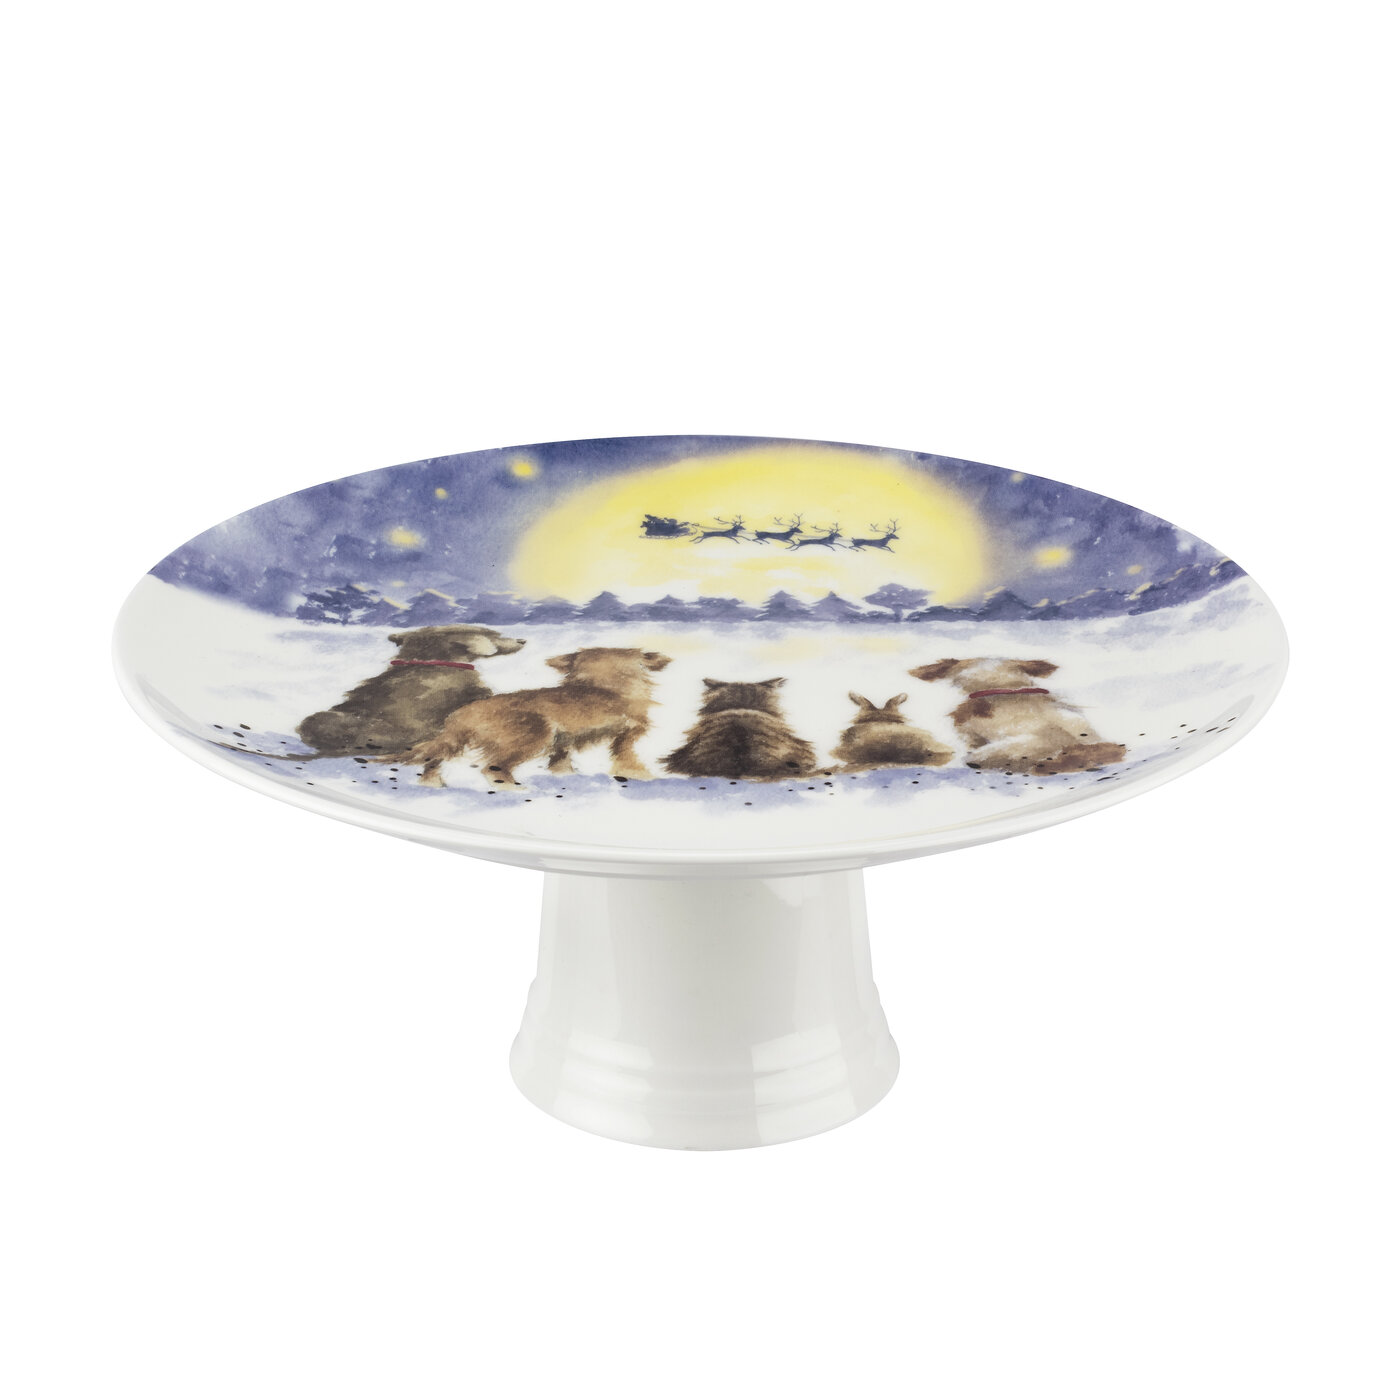 Royal Worcester Wrendale Designs 9.75 Inch Footed Cake Plate (The Magic of Christmas) image number 0